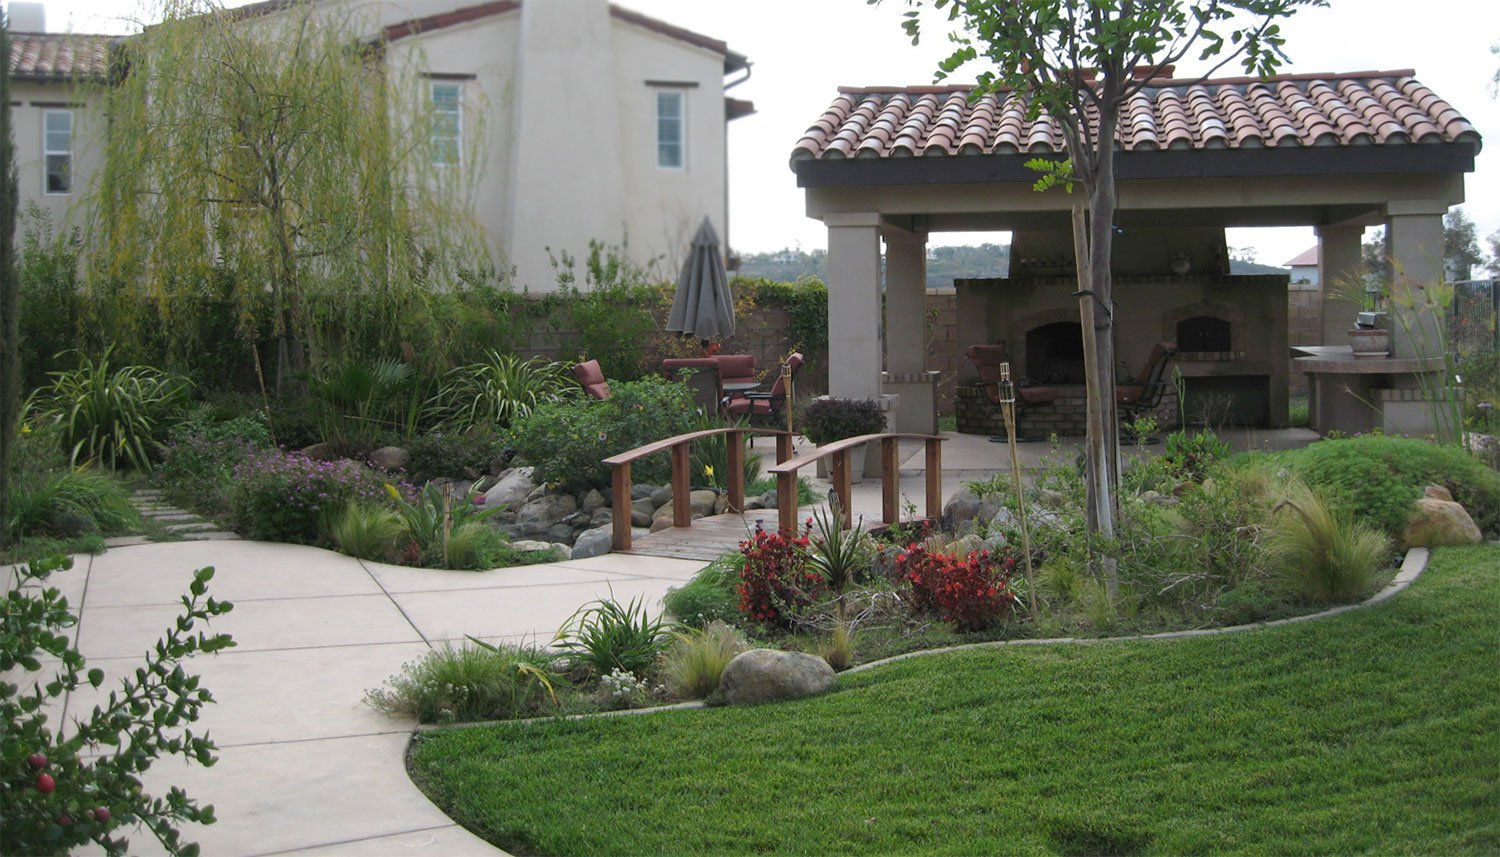 Landscaping design and construction of stream and bridge